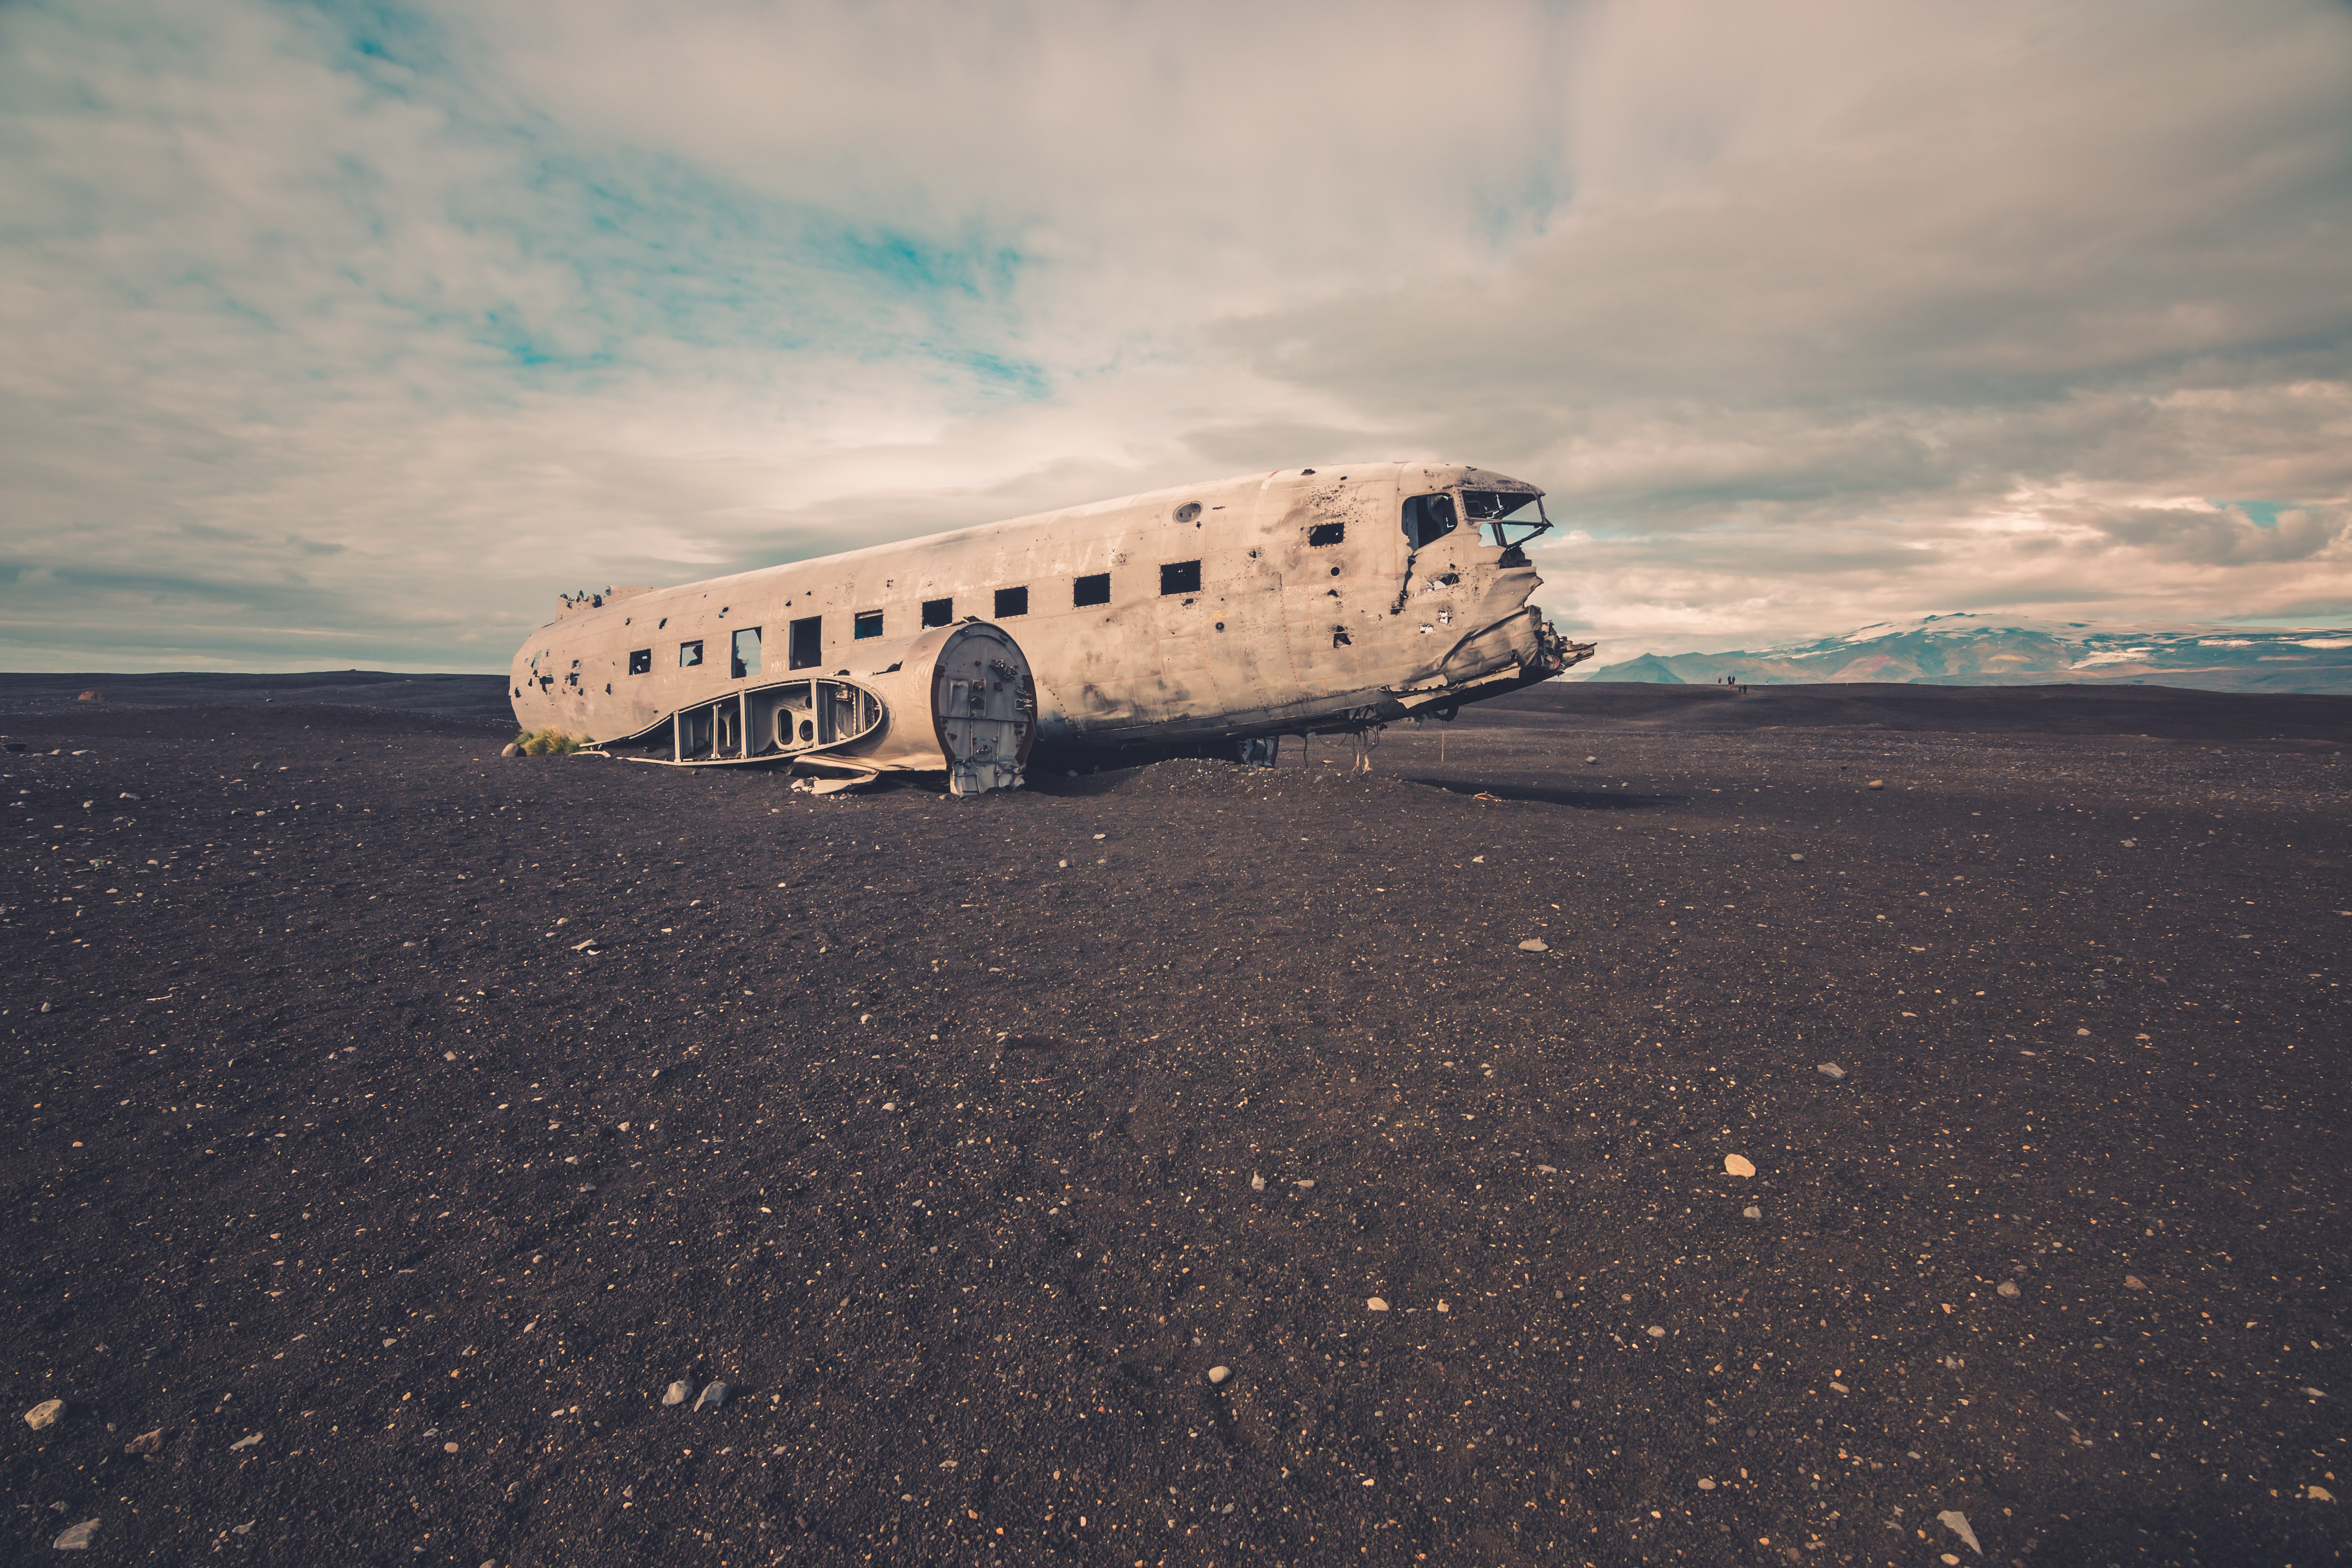 Old passenger airplane wreck on the beach in Iceland